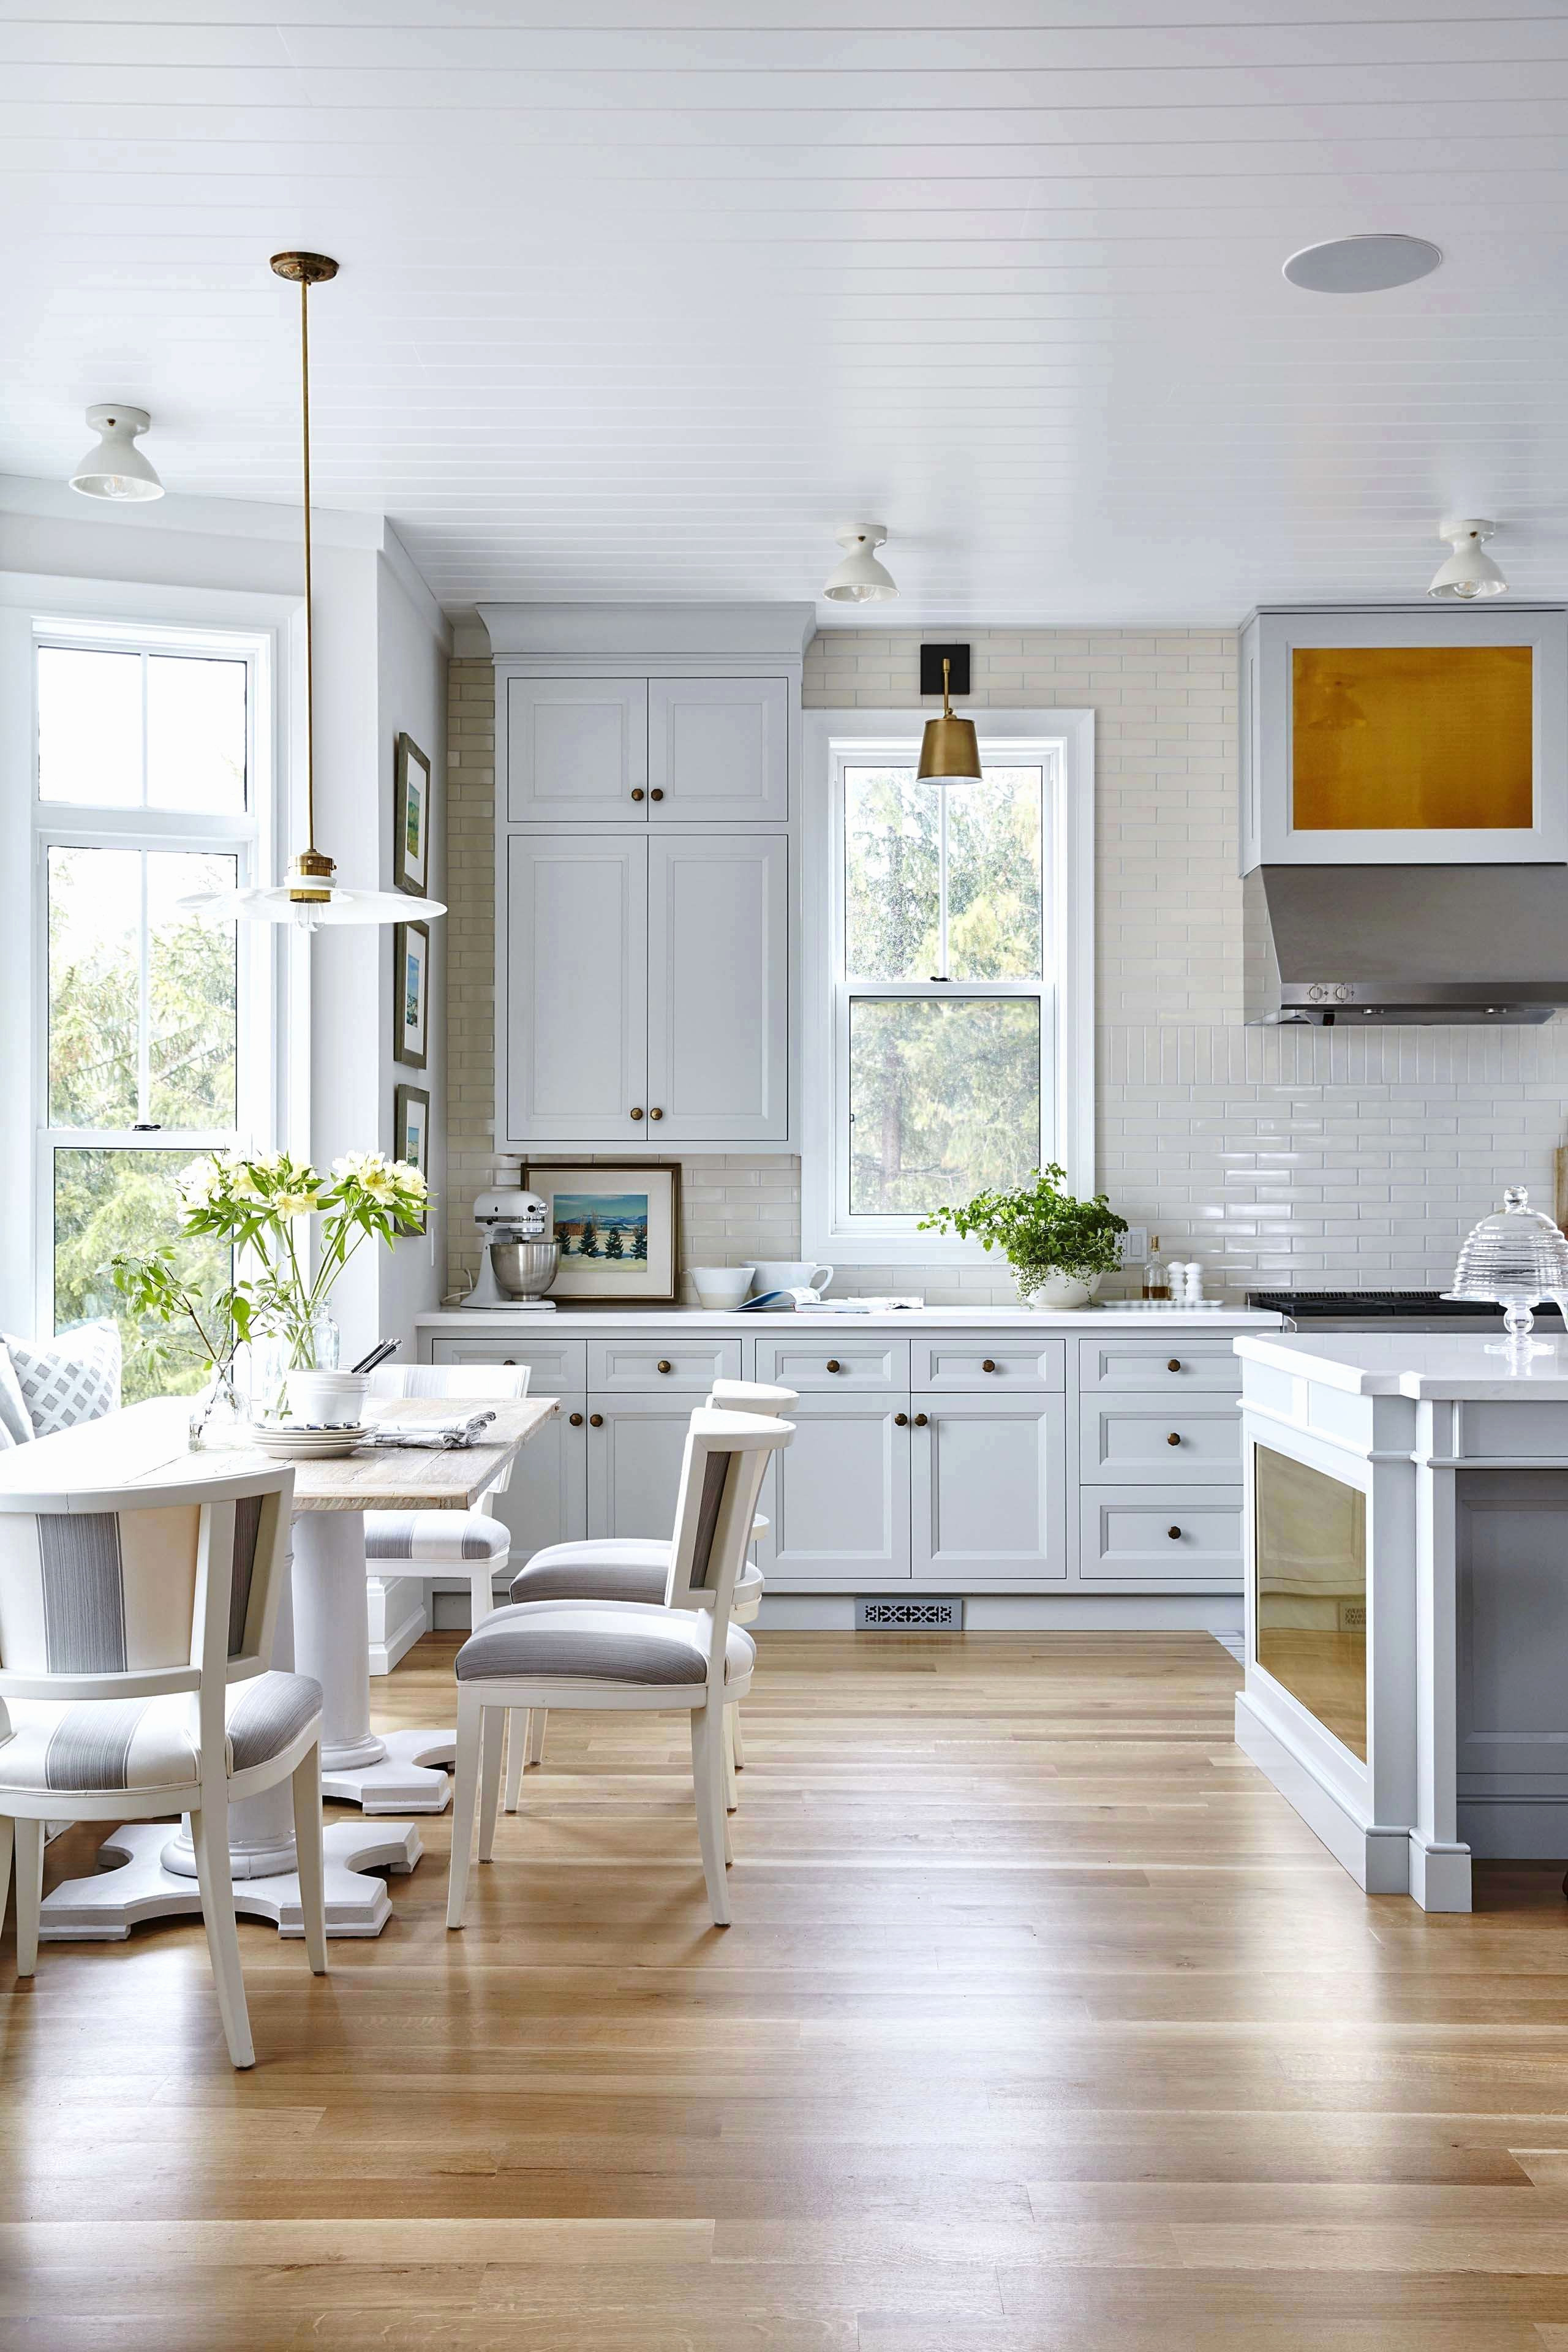 hardwood floor in kitchen with white cabinets of kitchen cabinets ideas fresh kitchen cabinet layout new kitchen joys inside kitchen cabinets ideas fresh kitchen cabinet layout new kitchen joys kitchen joys kitchen 0d